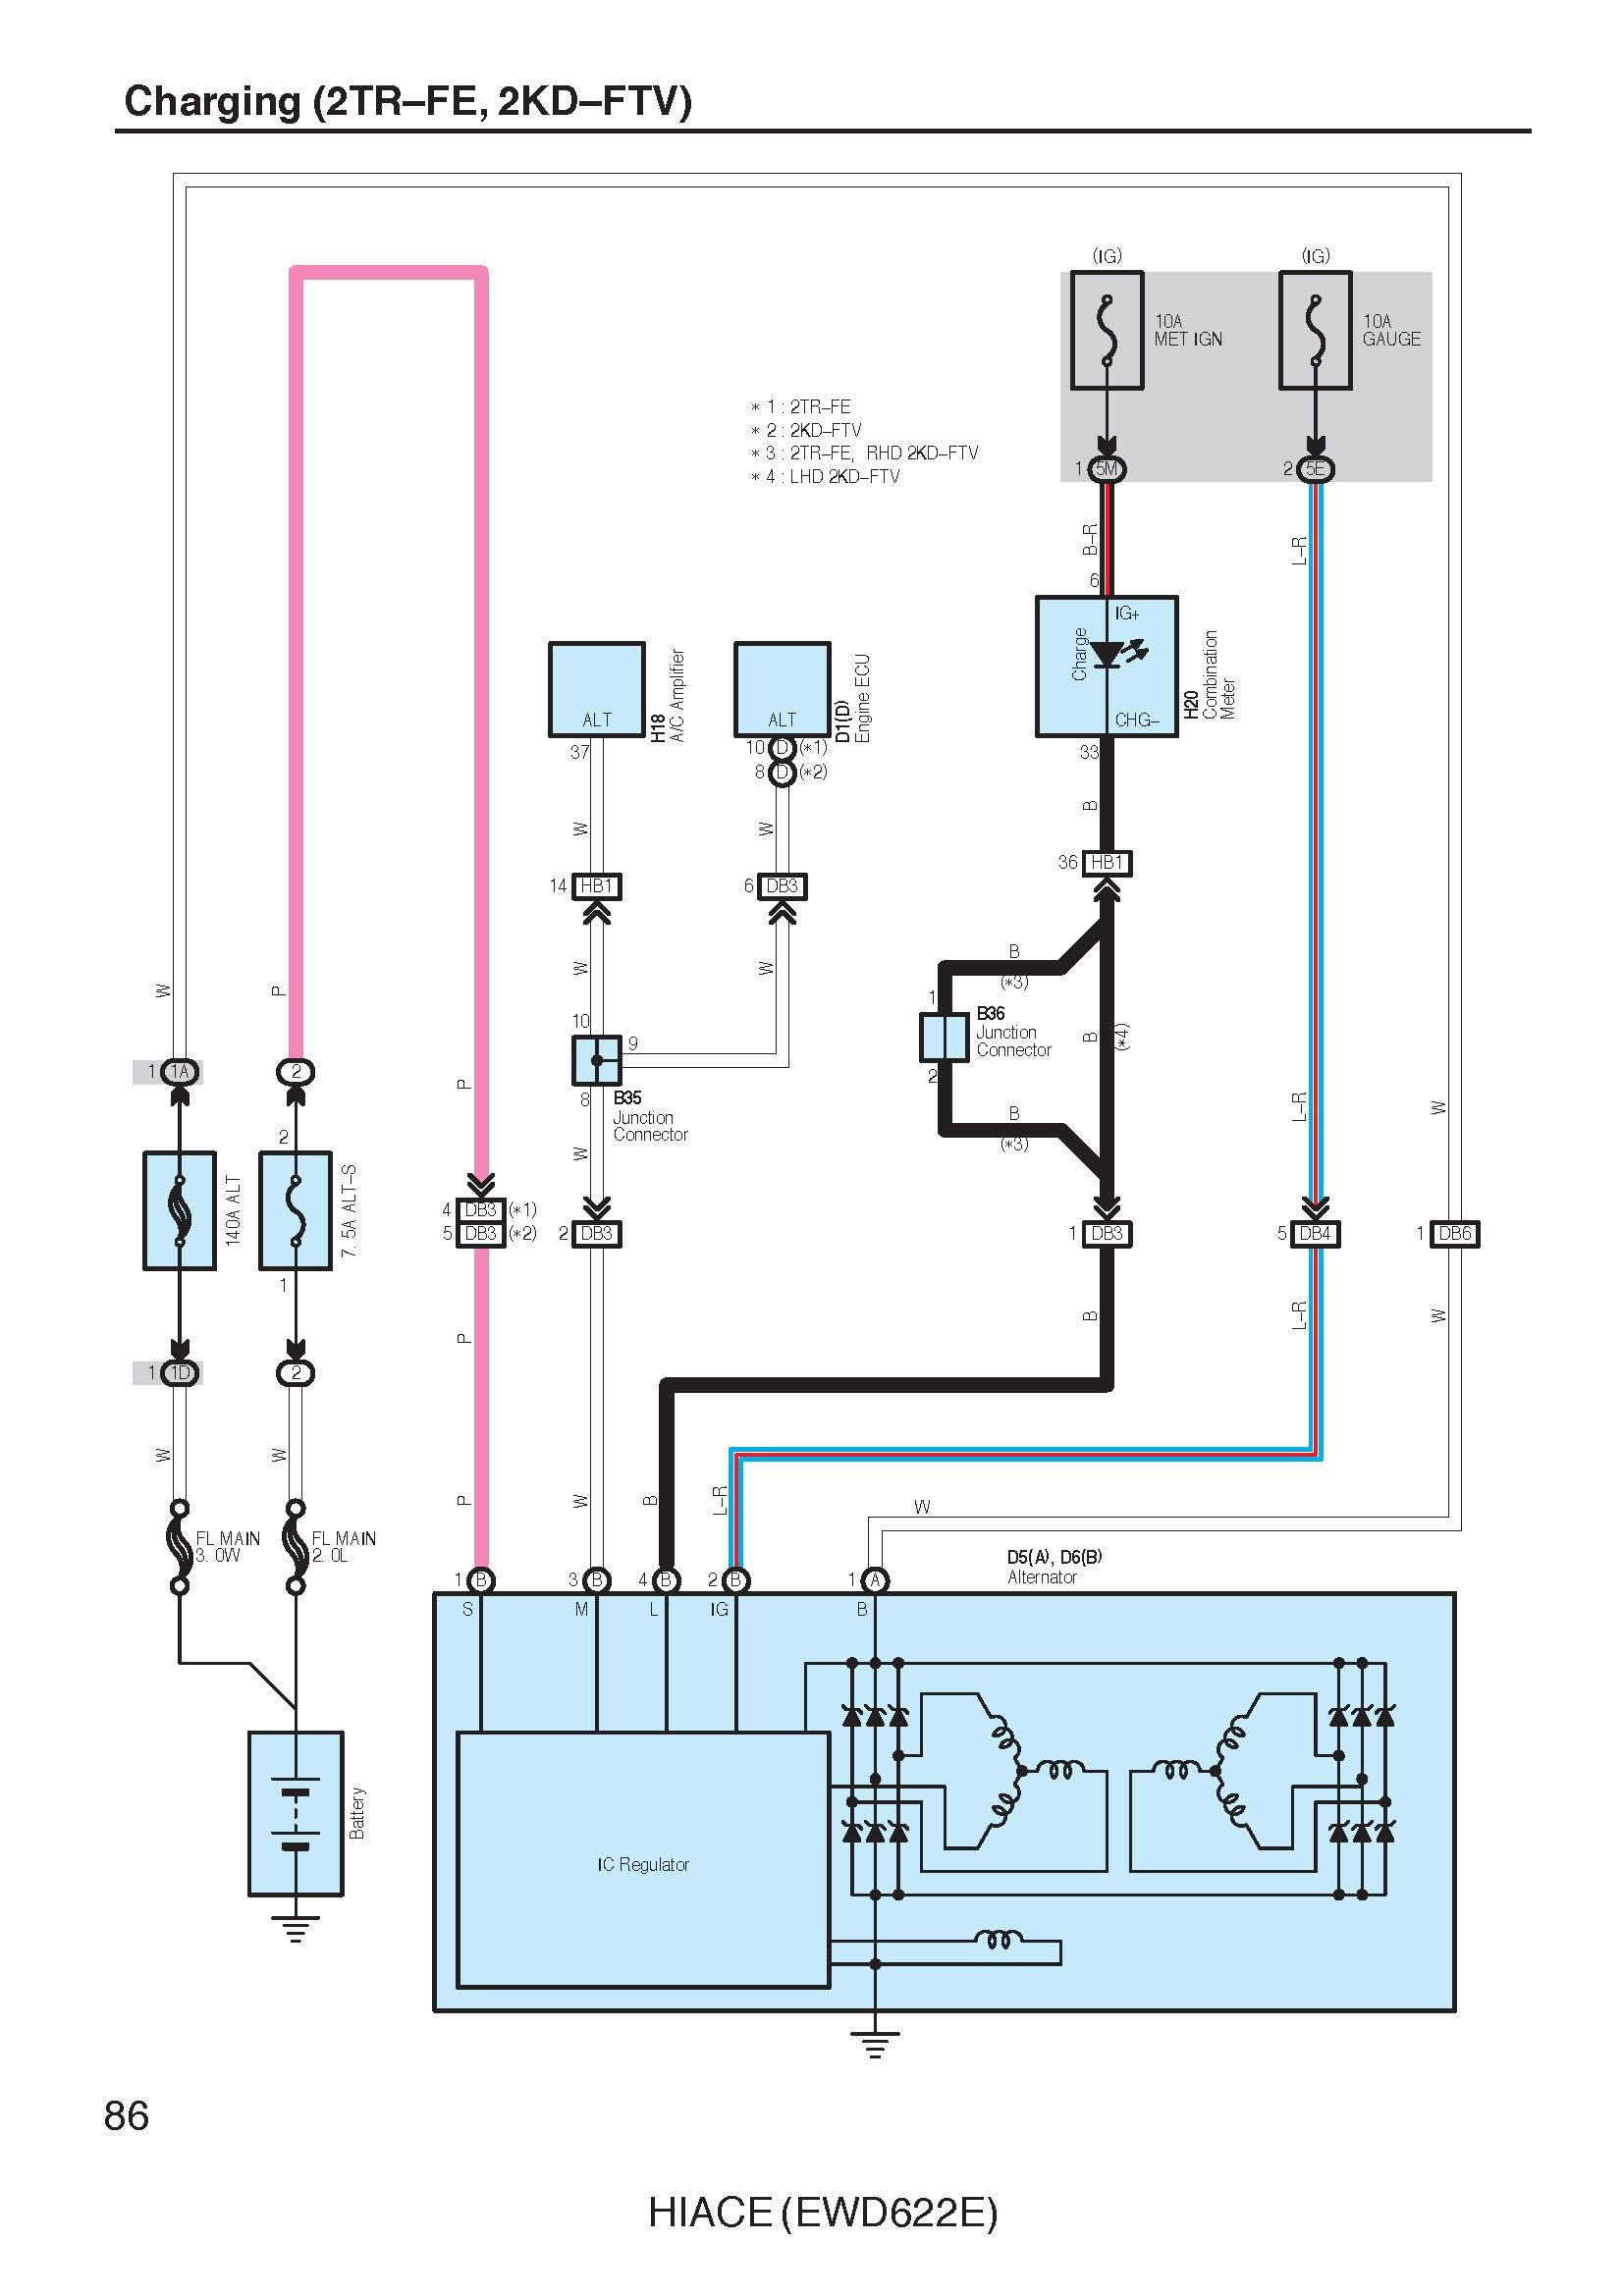 System Wiring Diagrams Toyota Sno Way Diagram 2006 Hiace Original And Coloured Electrical